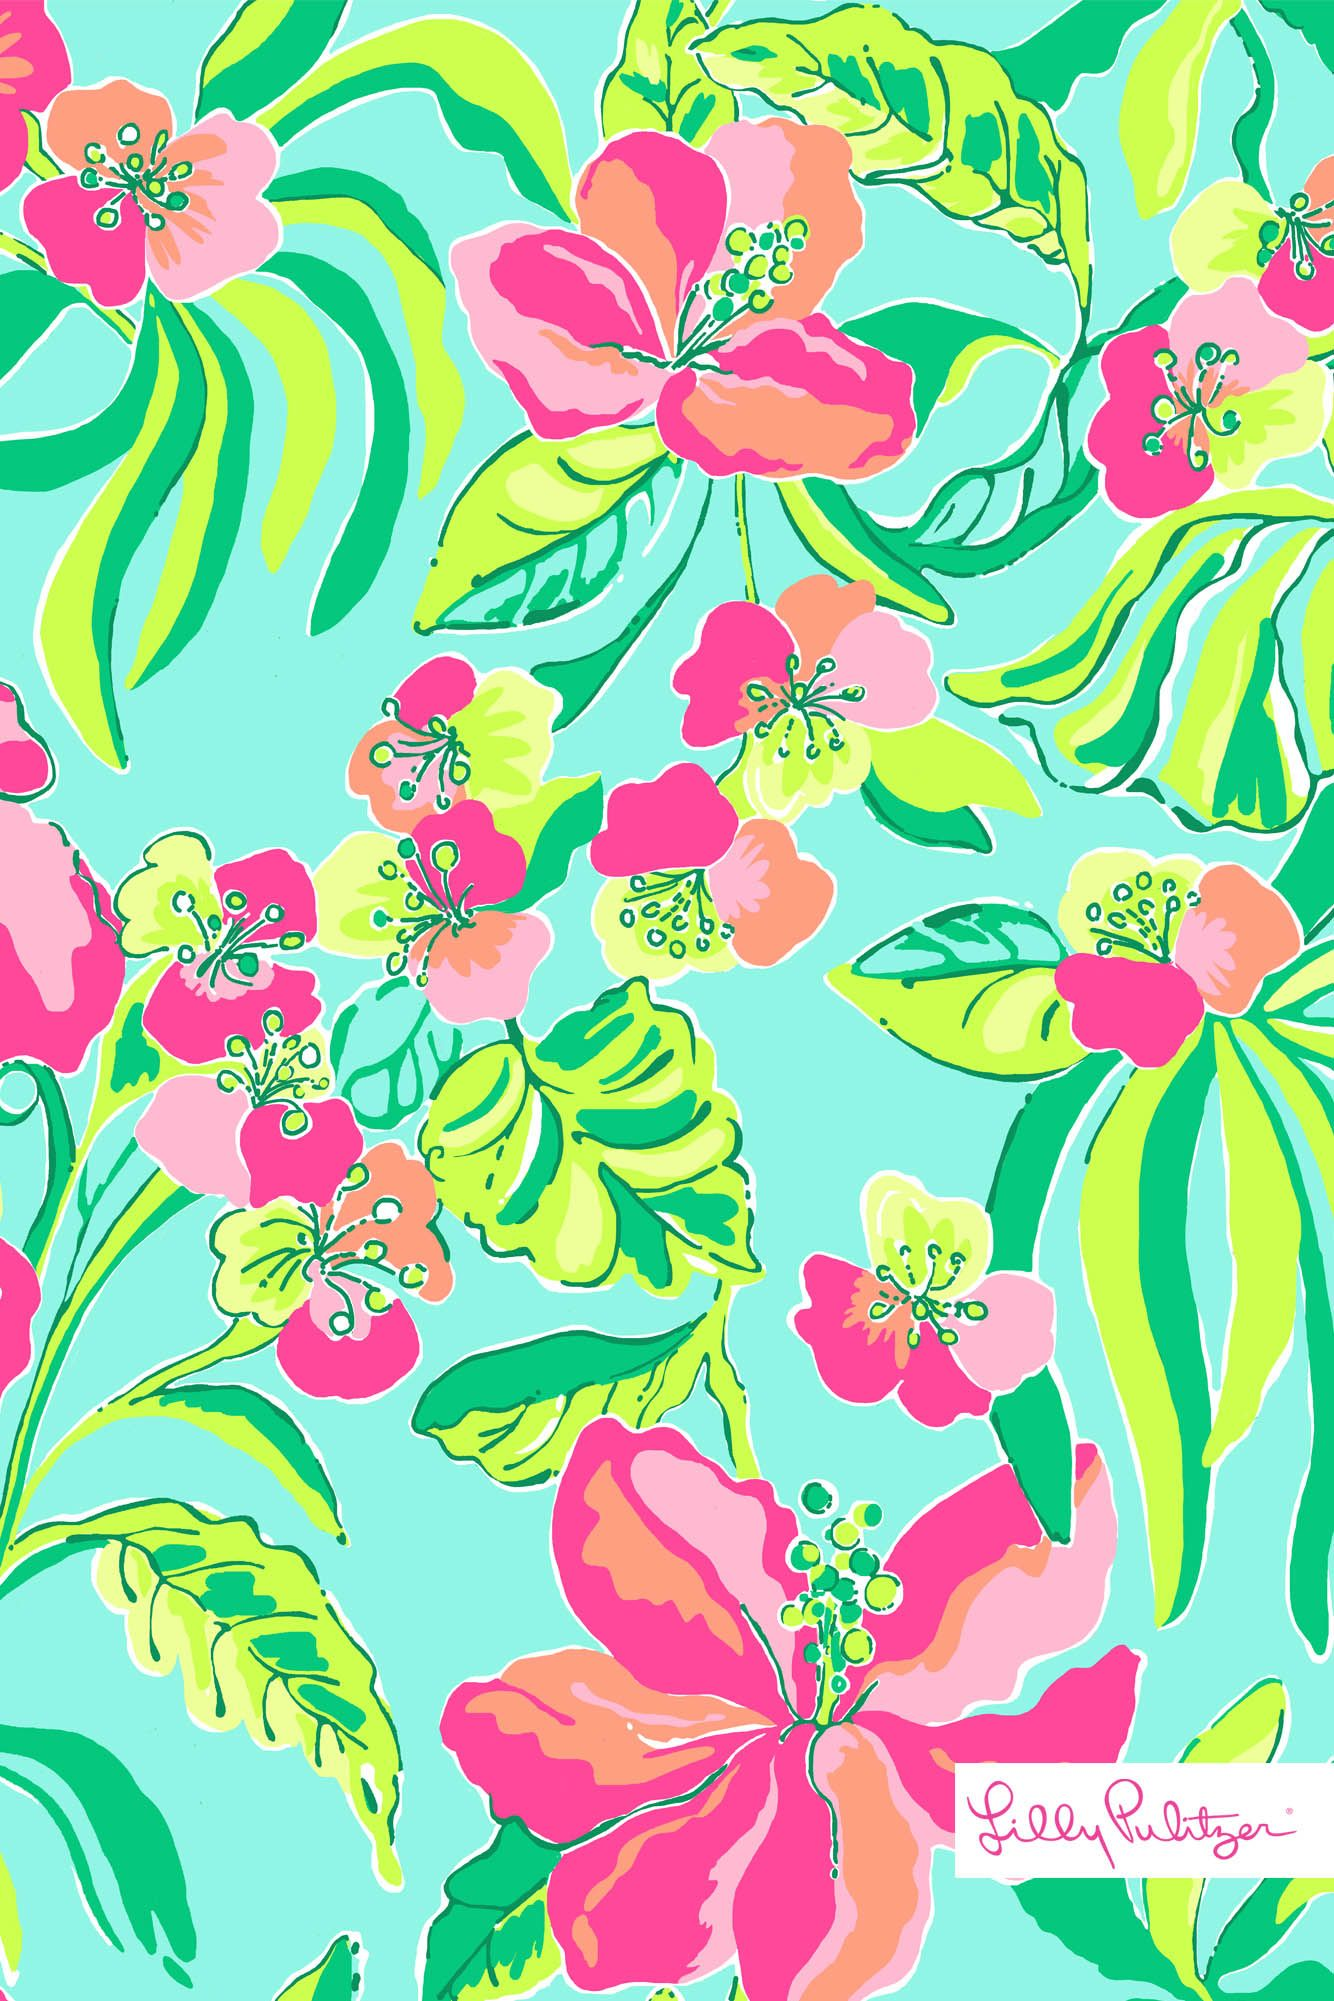 lily pulitzer wallpaper on pinterest lily pulitzer lily. Black Bedroom Furniture Sets. Home Design Ideas